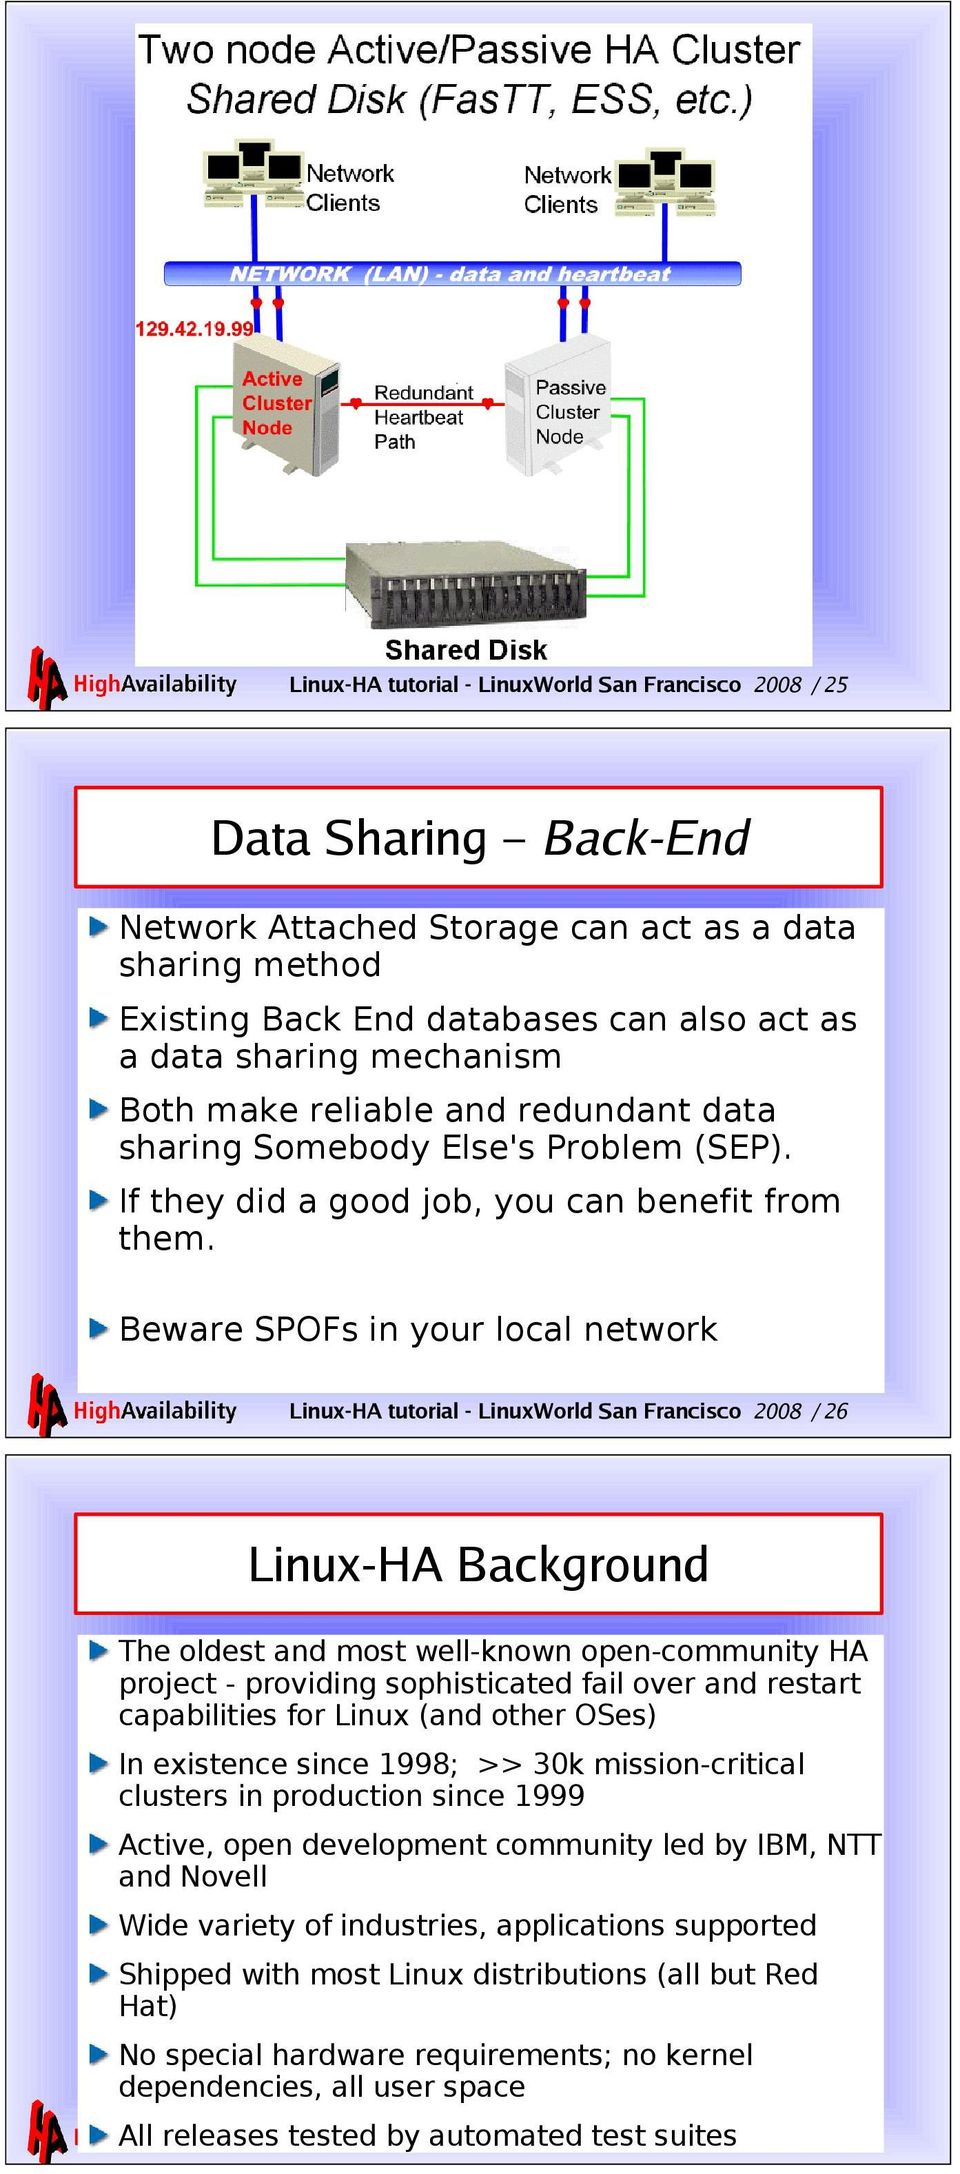 Beware SPOFs in your local network Linux-HA tutorial - LinuxWorld San Francisco 2008 / 26 Linux-HA Background The oldest and most well-known open-community HA project - providing sophisticated fail